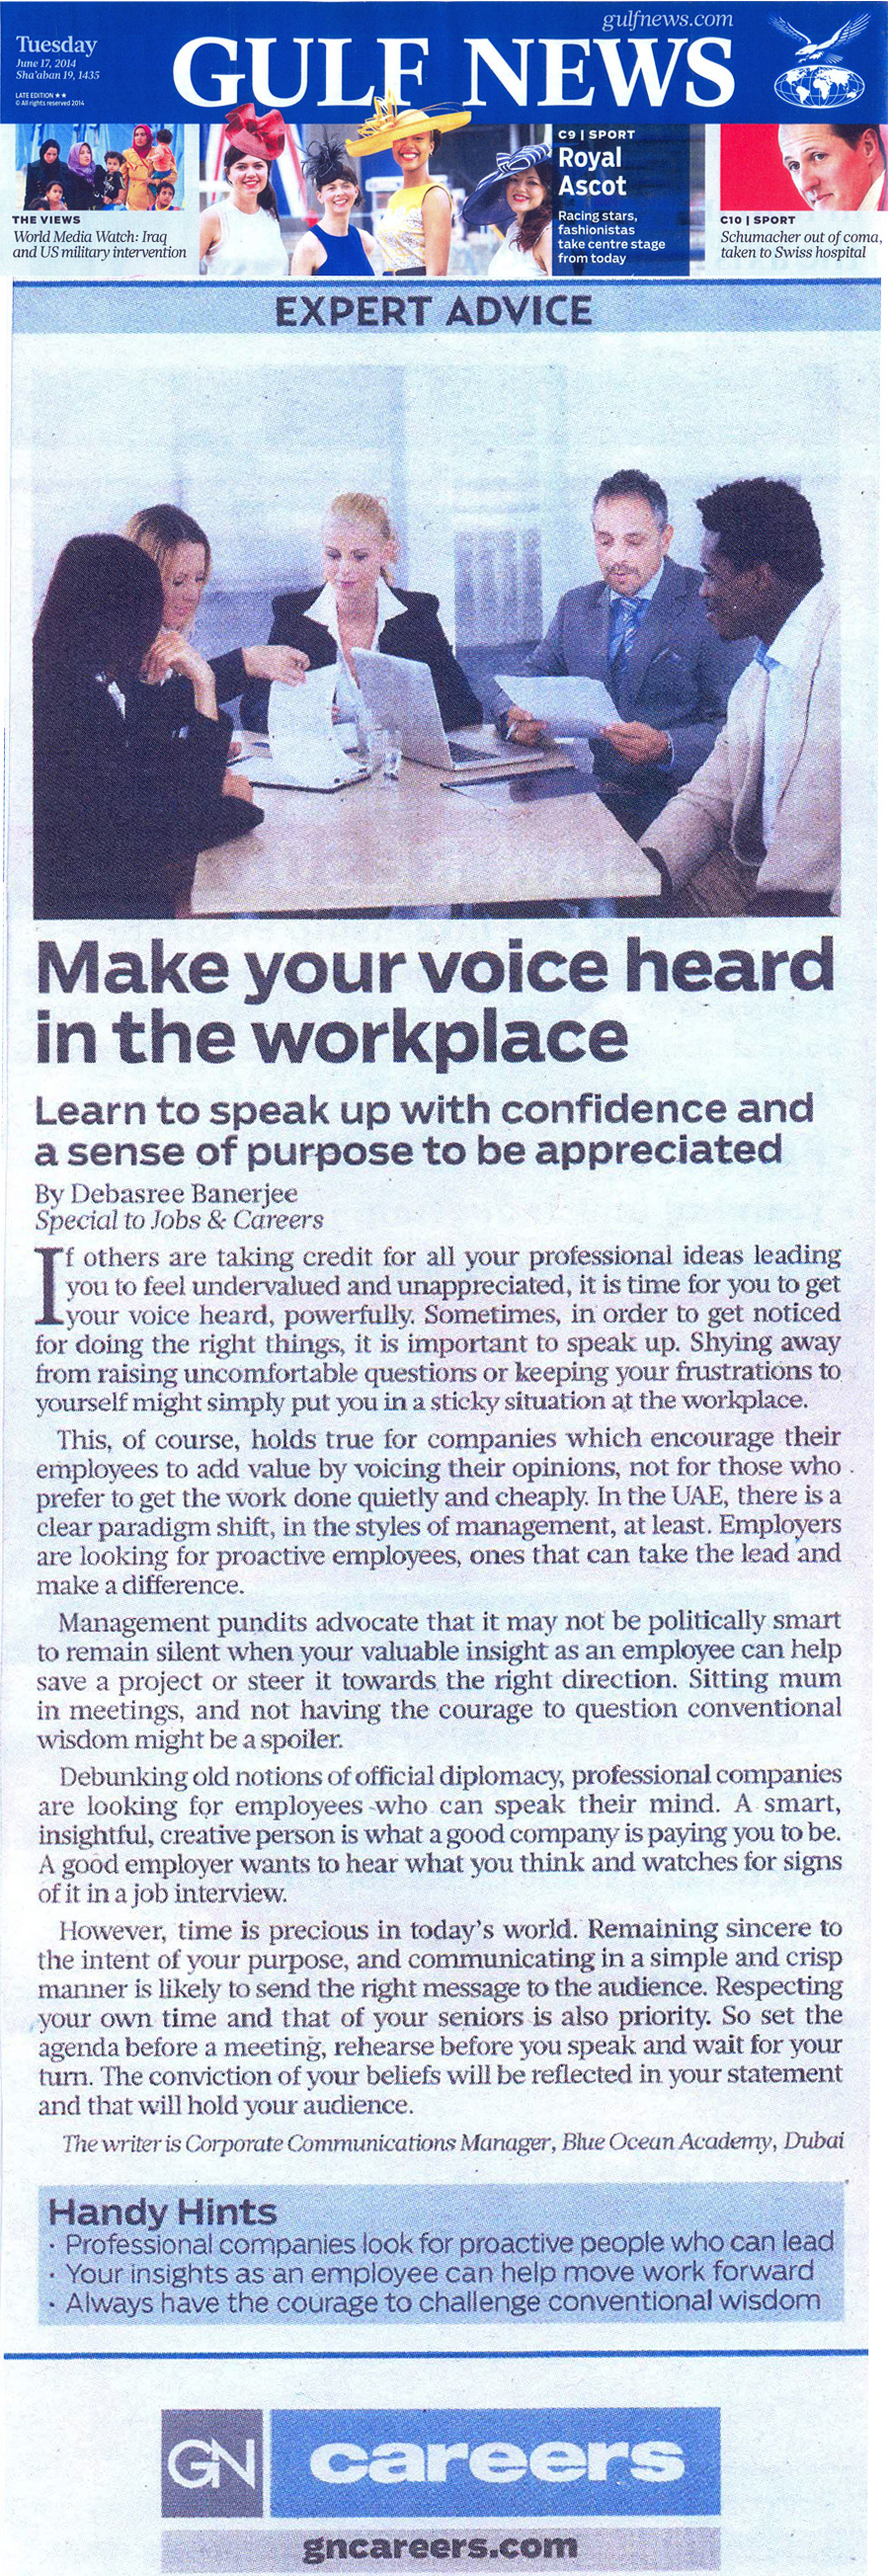 Make your voice heard in the workplace